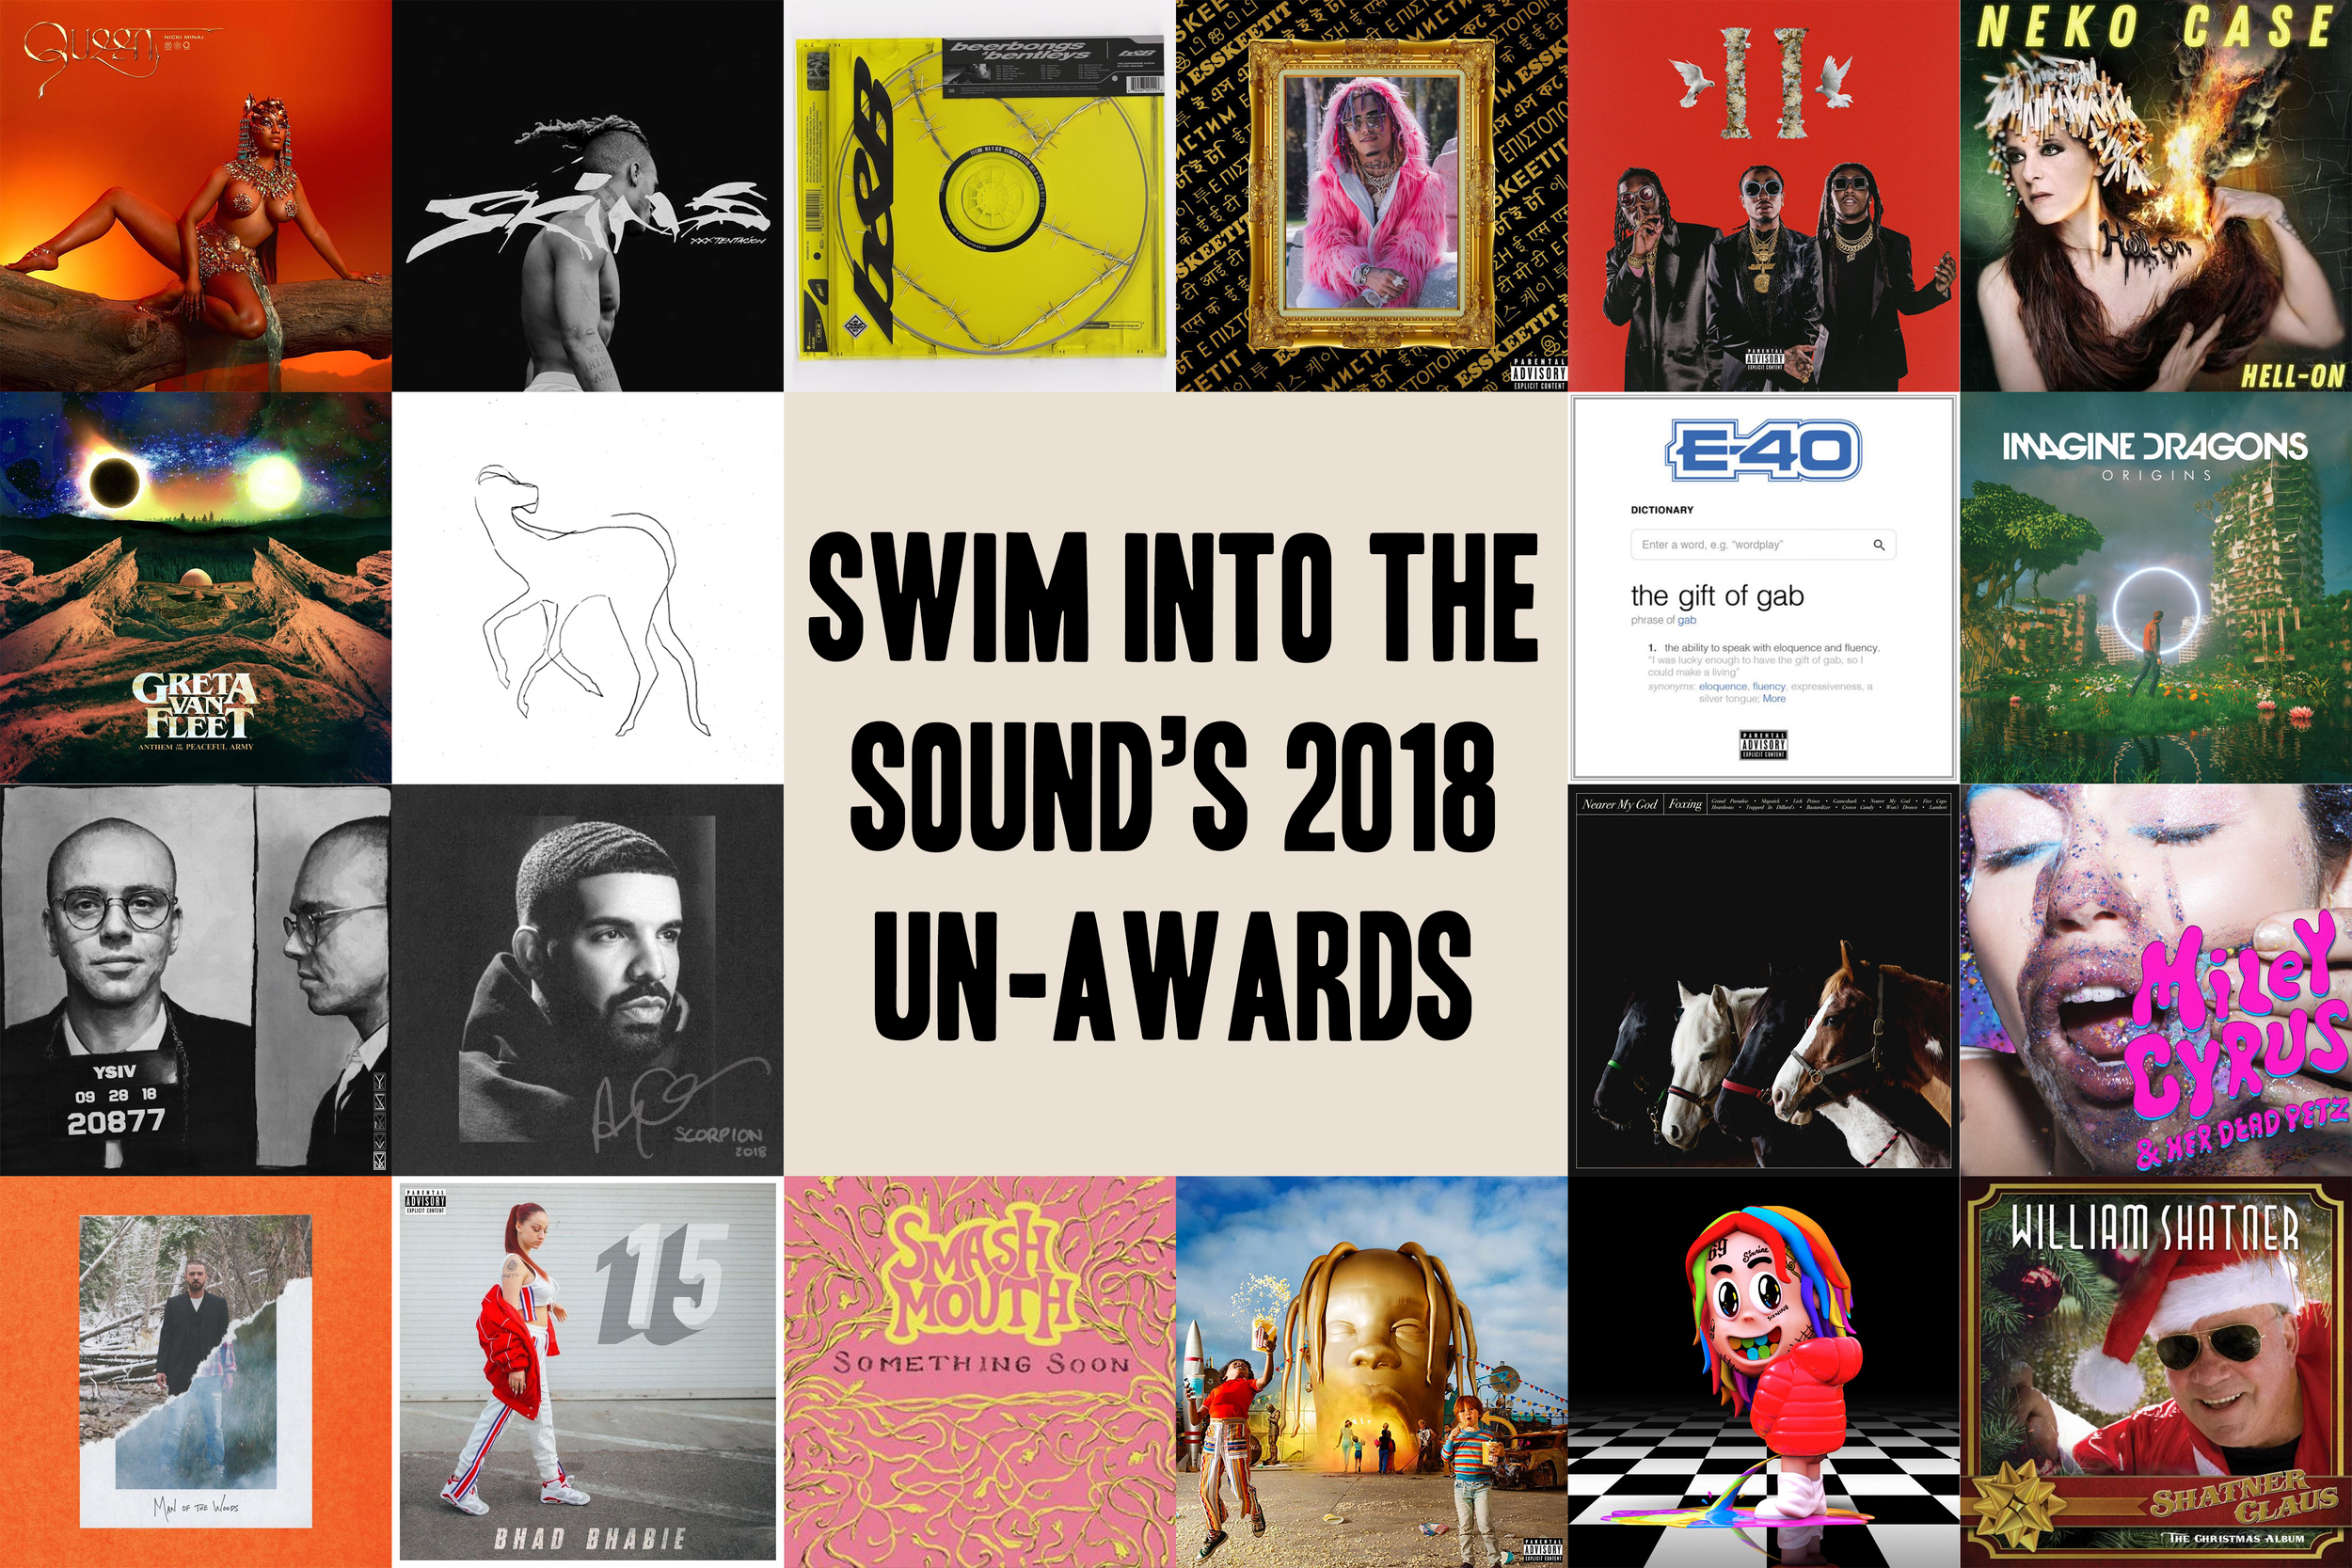 00 - Unawards 2018 Resize.png